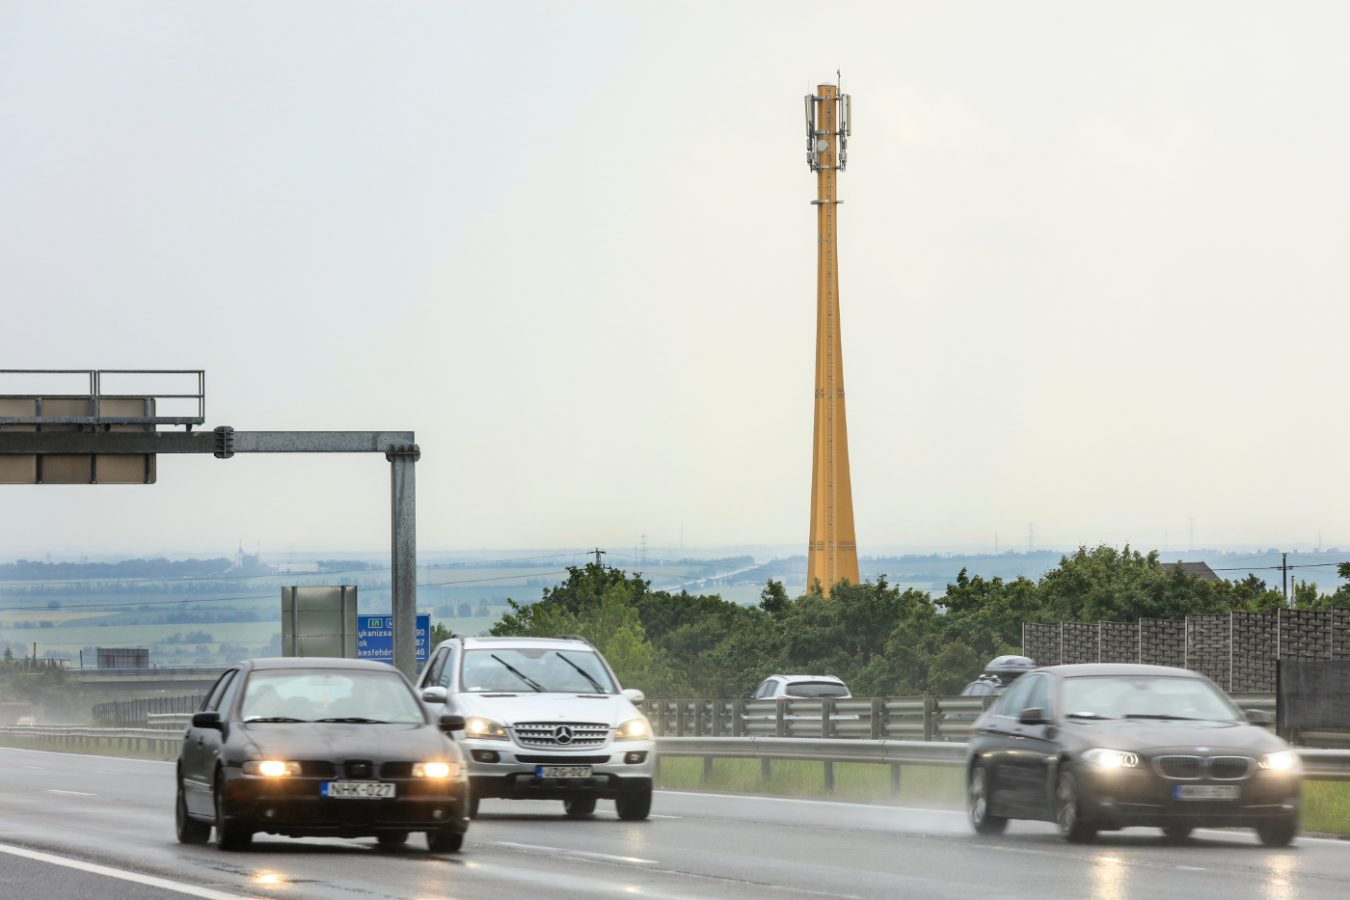 Traffic and in the background wooden telecommunication mast.